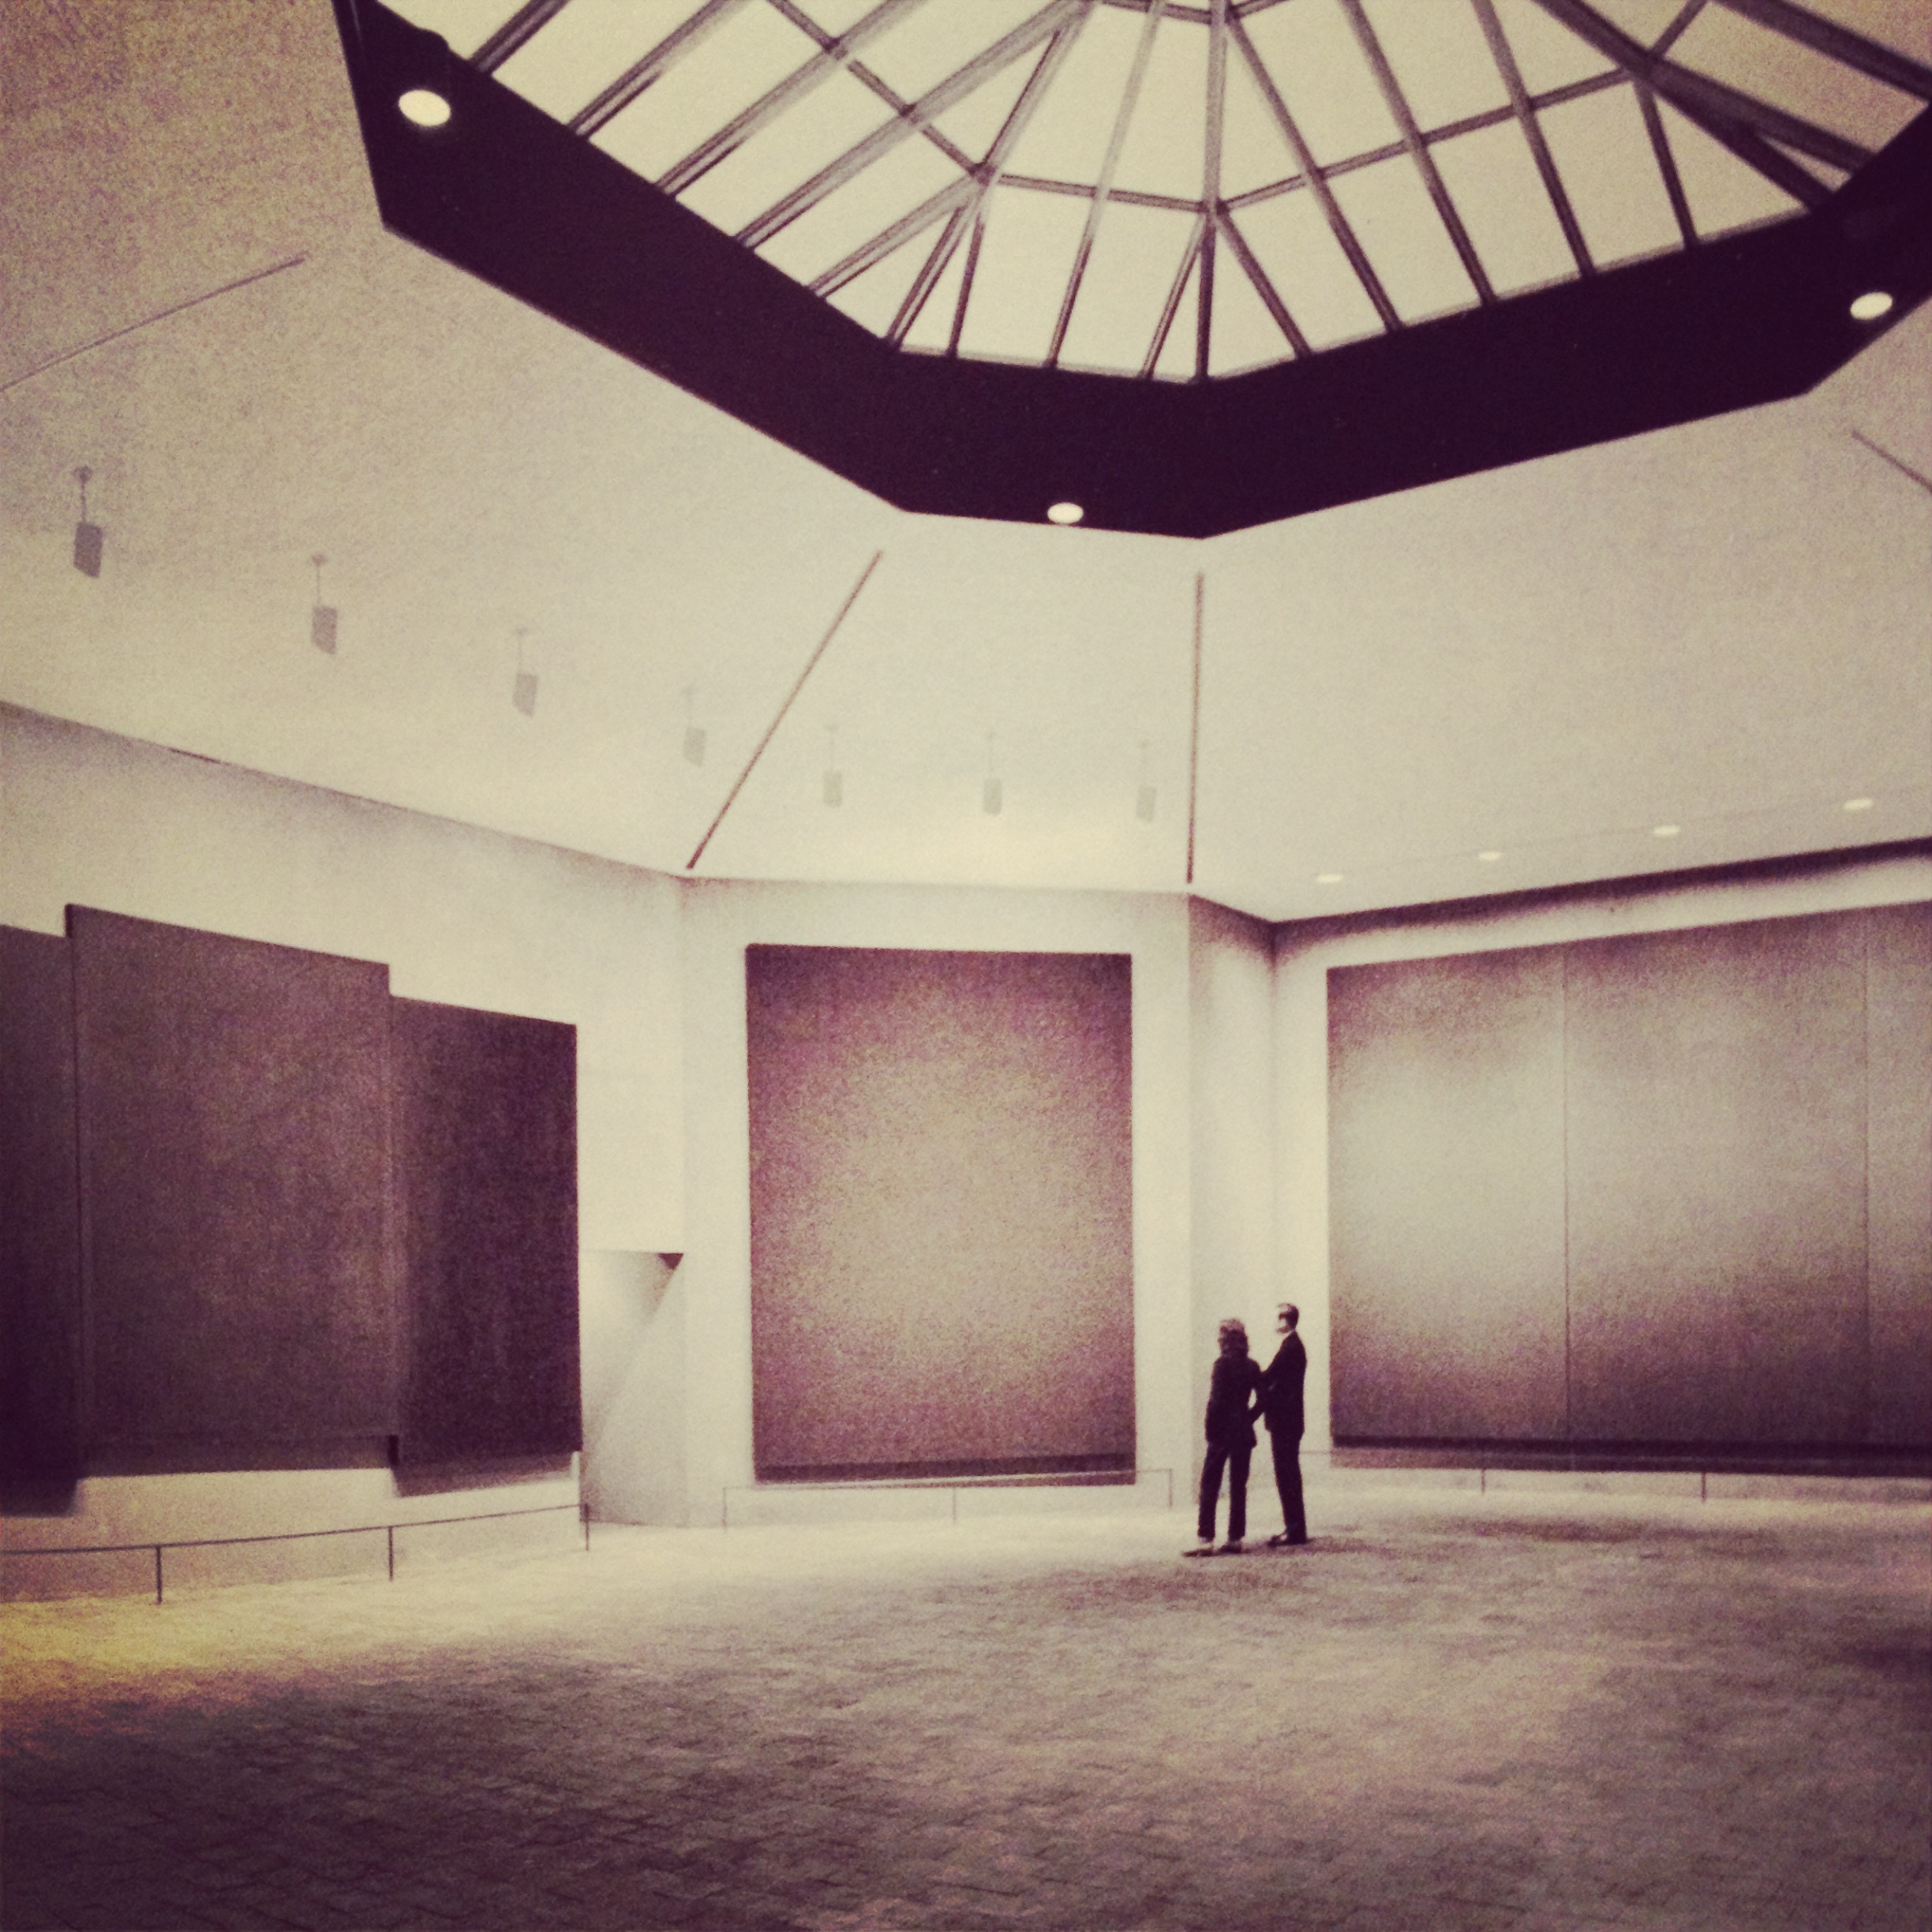 This image was taken from the book  The Rothko Chapel: An Act of Faith  by Susan J. Barnes as no photos are allowed inside.